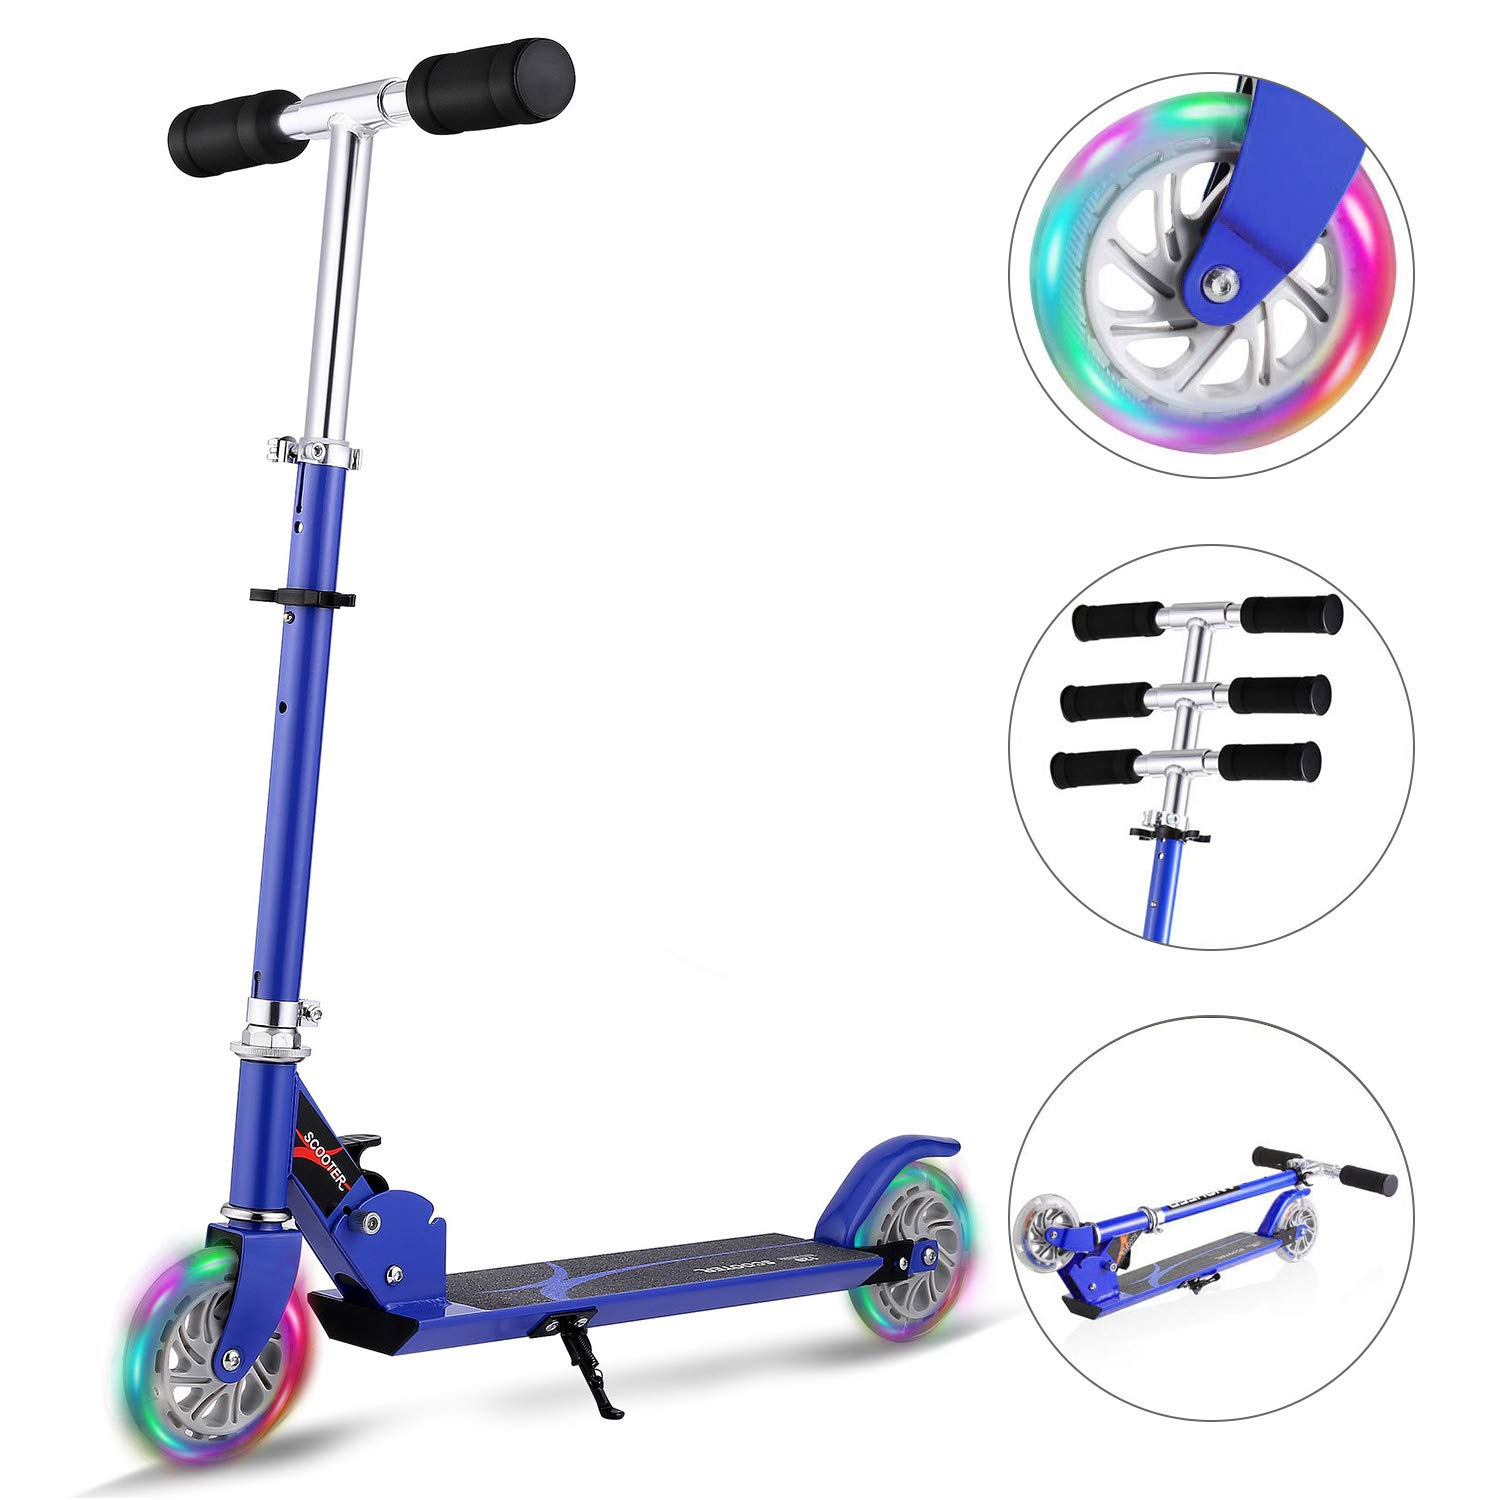 Hikole Scooter for Kids | Scooters Foldable Portable with Adjustable Height Kick Scooter with 2 LED Light Up PU Flashing Wheels, Birthday Gifts for Toddlers Boys Girls Kids Age 4-12 Years Old by Hikole